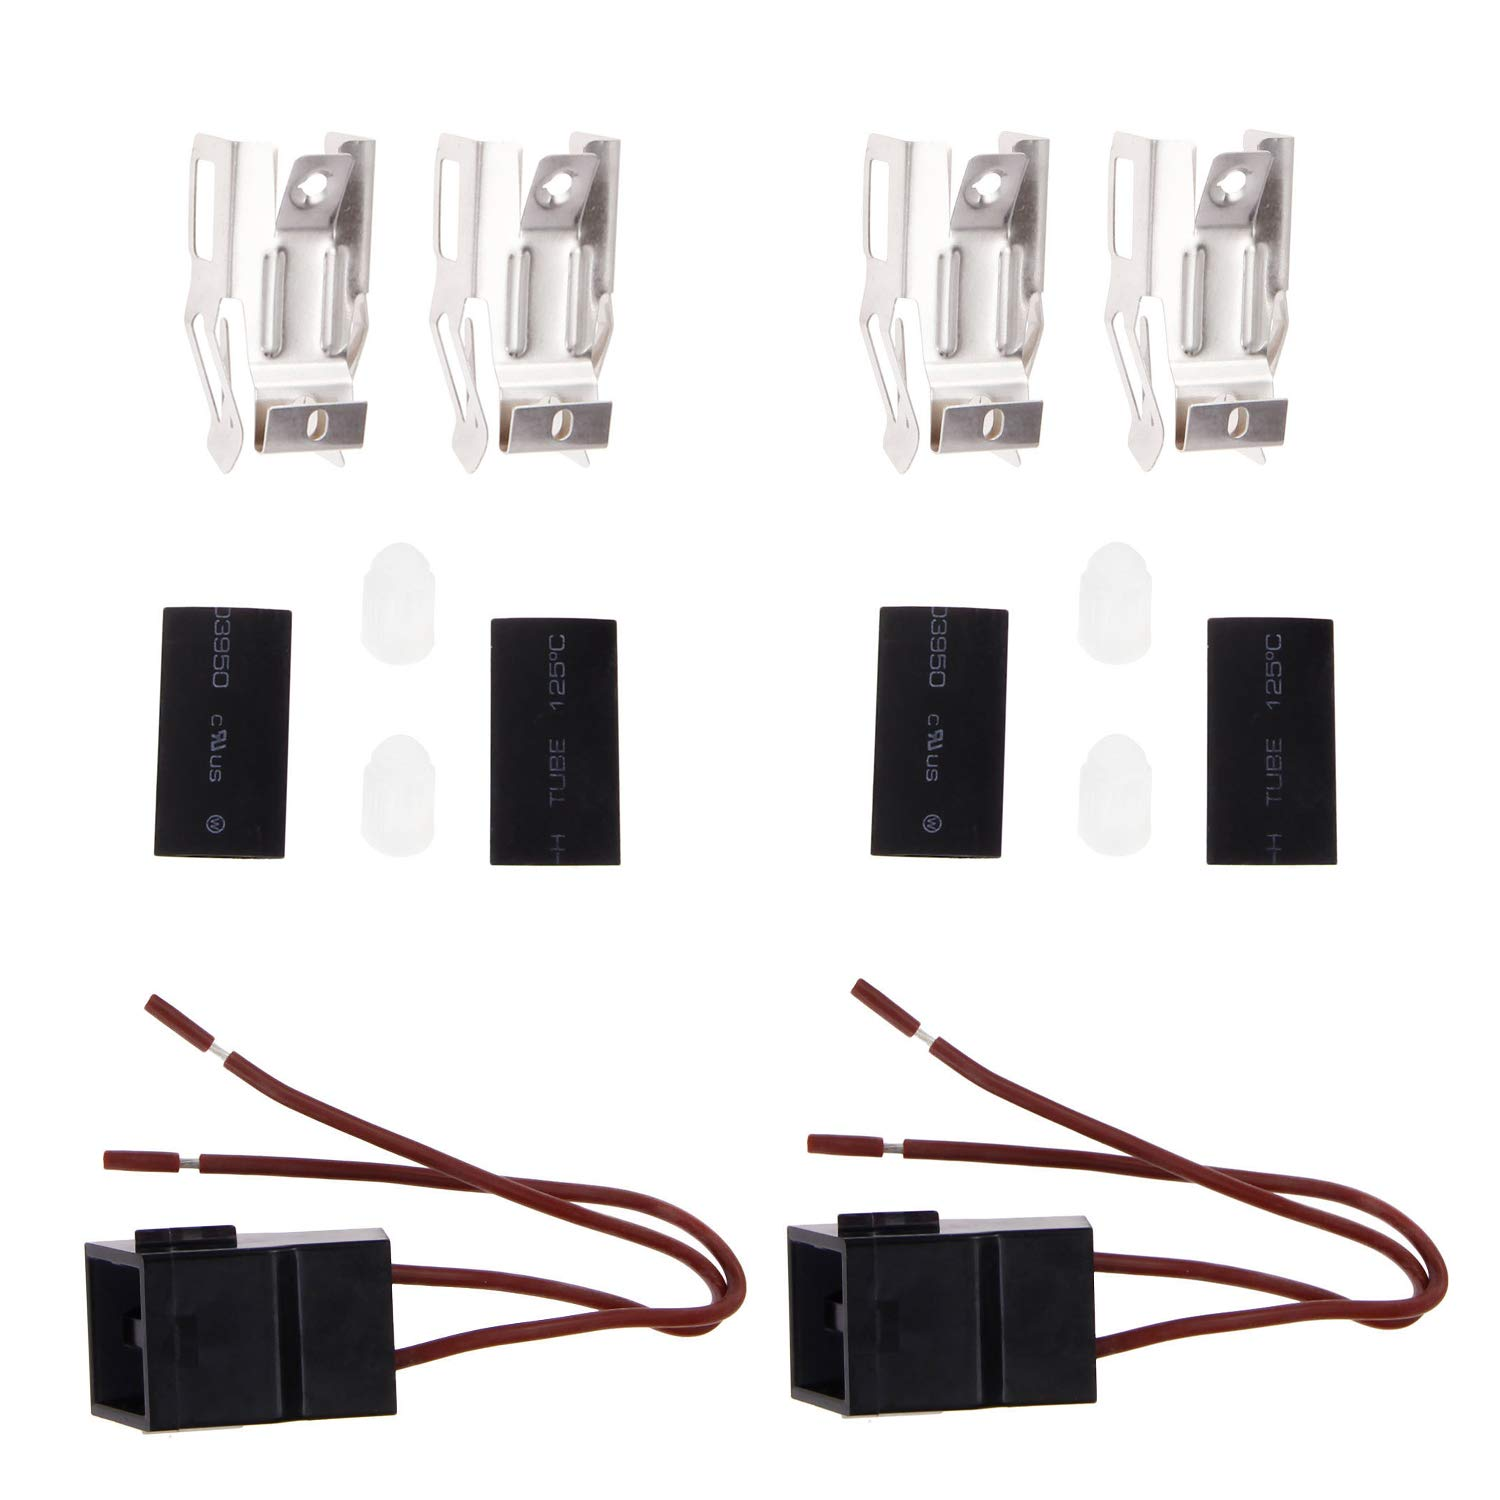 Range Surface Burner Receptacle Kit for ERR117 Whirlpool Kenmore Range/Cooktop/Microwave Oven Combo Replaces 330031, 5303935058, 814399, WB17X5091, W10116799(2 Pack)